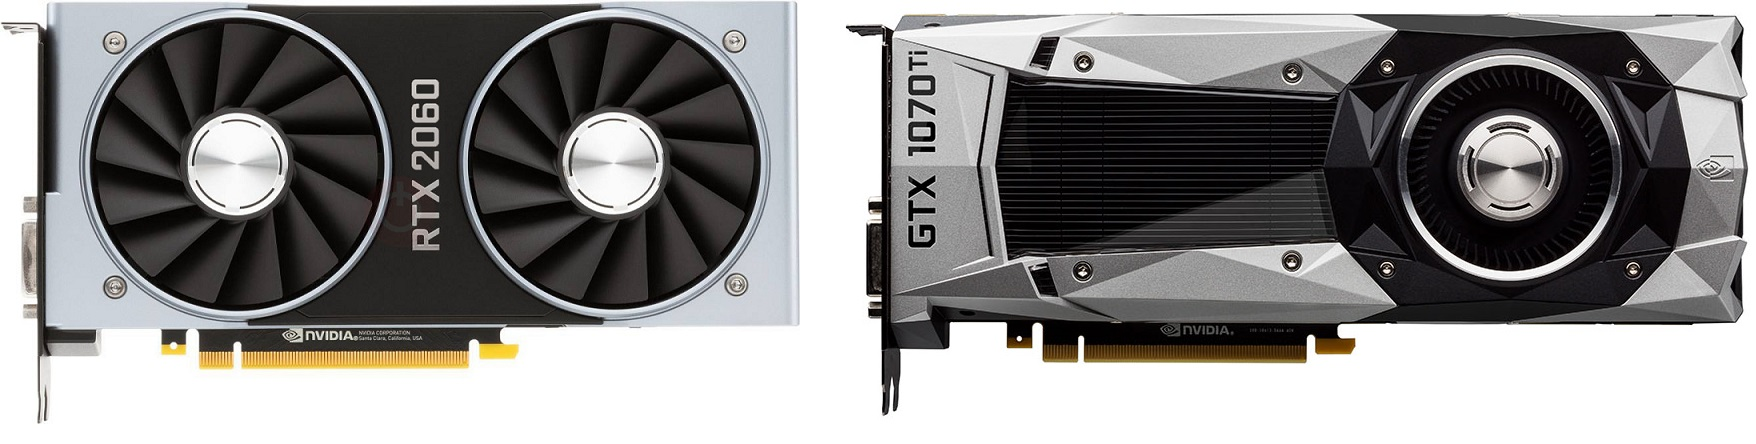 rtx 2060 fe front